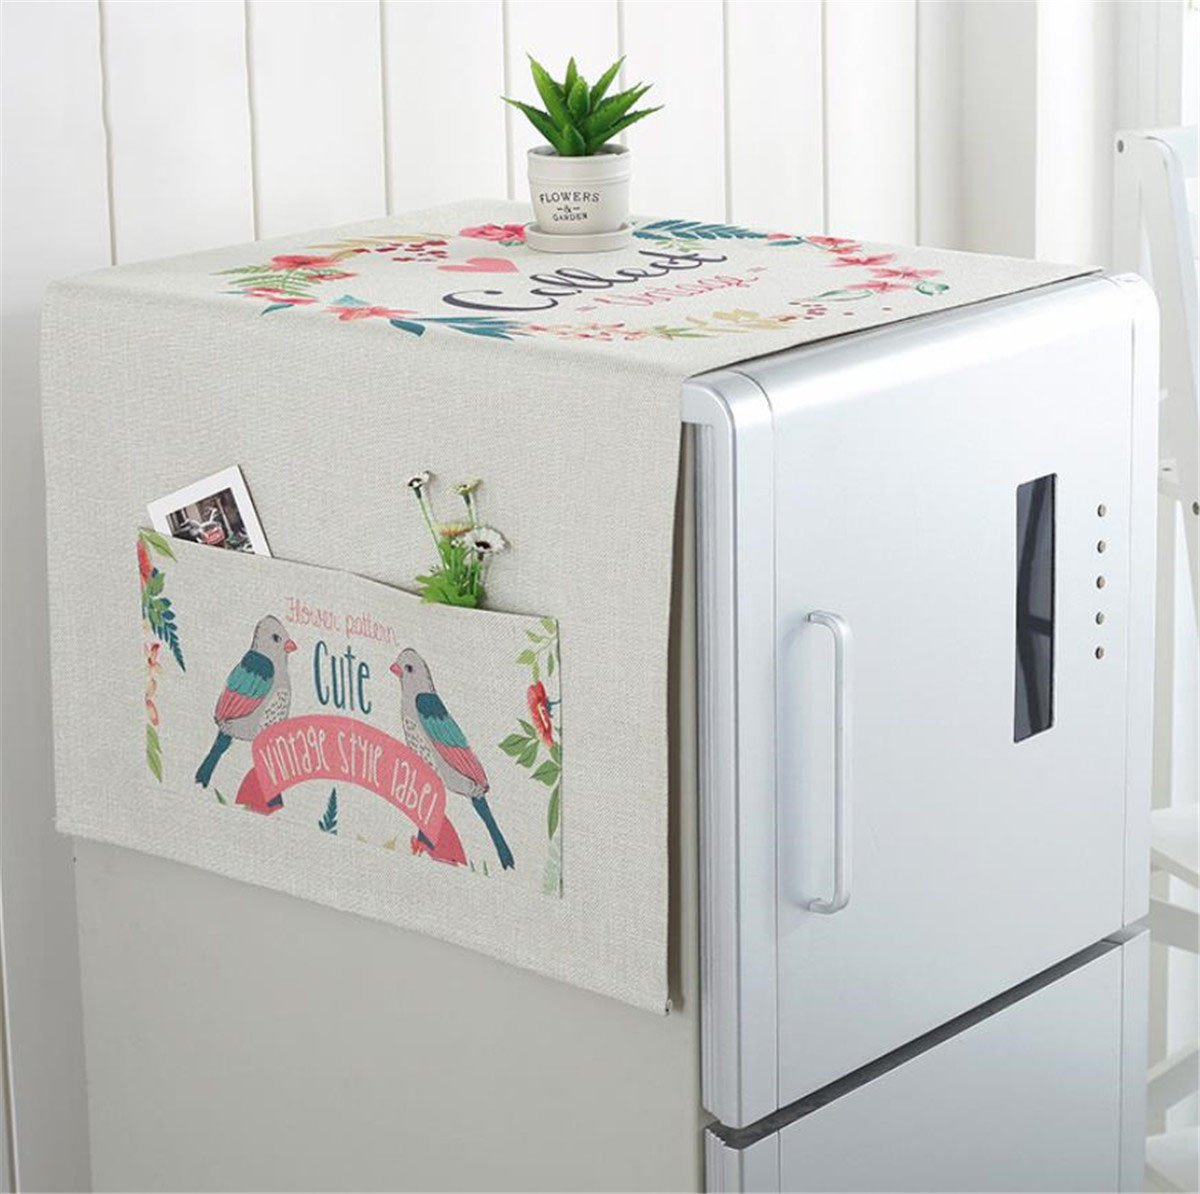 Mvchif Washing Machine Cover Dustproof Cotton Fridge Cover Decorative Top Load Cover with Side Storage Pockets 54x23inches (Cute Birds)